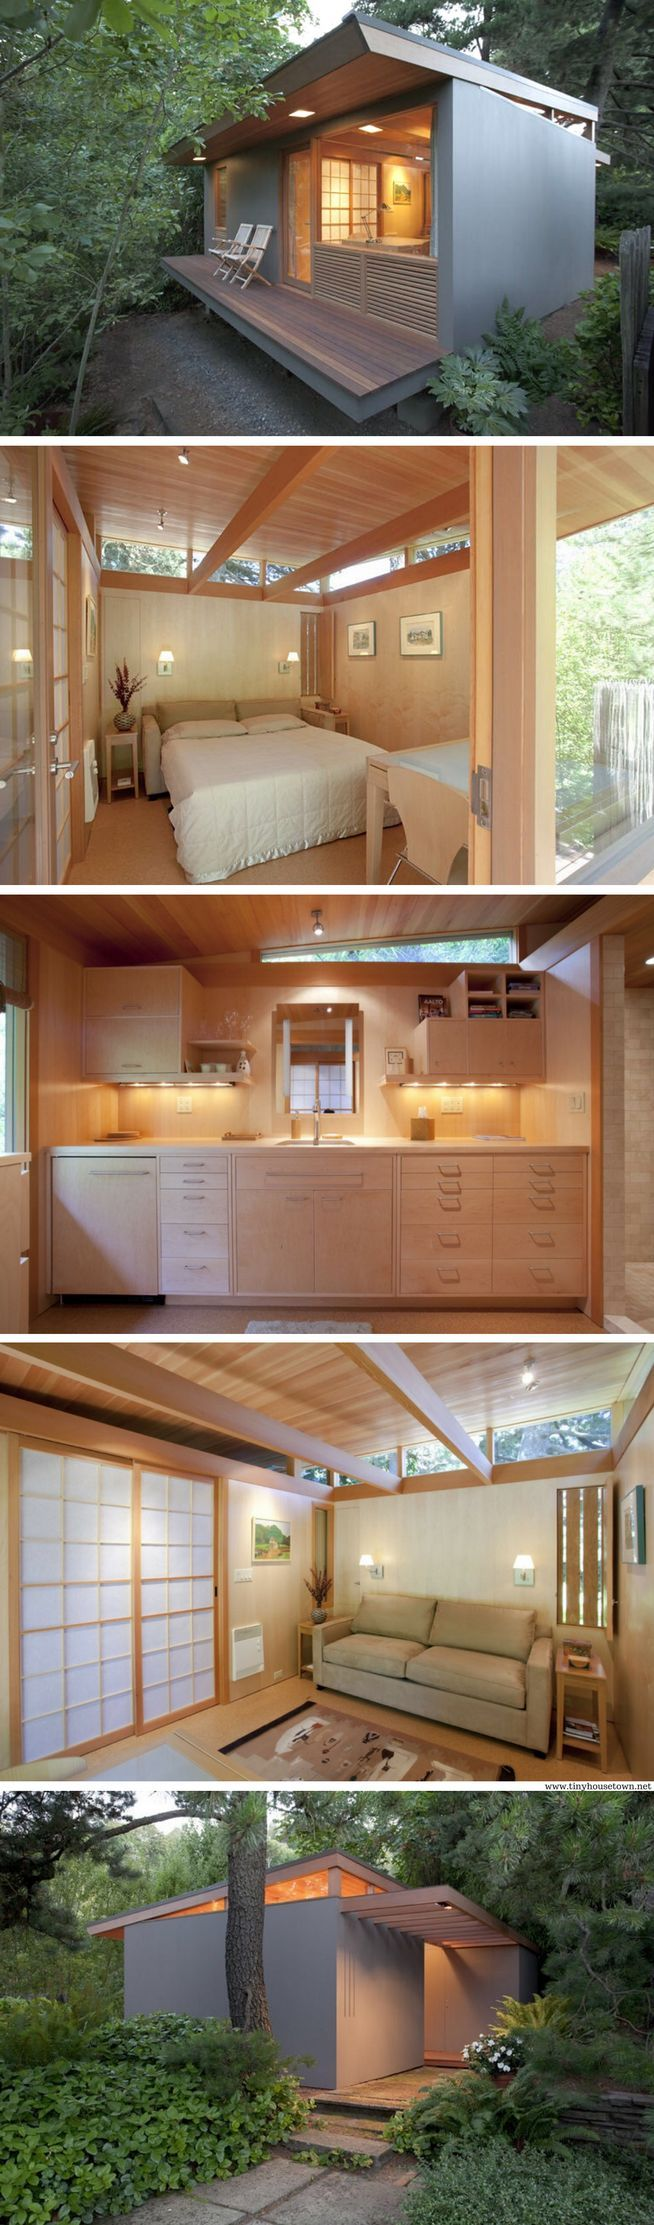 awesome The Portland Teahouse (236 sq ft)... by http://www.top-100-homedecorpictures.us/tiny-homes/the-portland-teahouse-236-sq-ft/